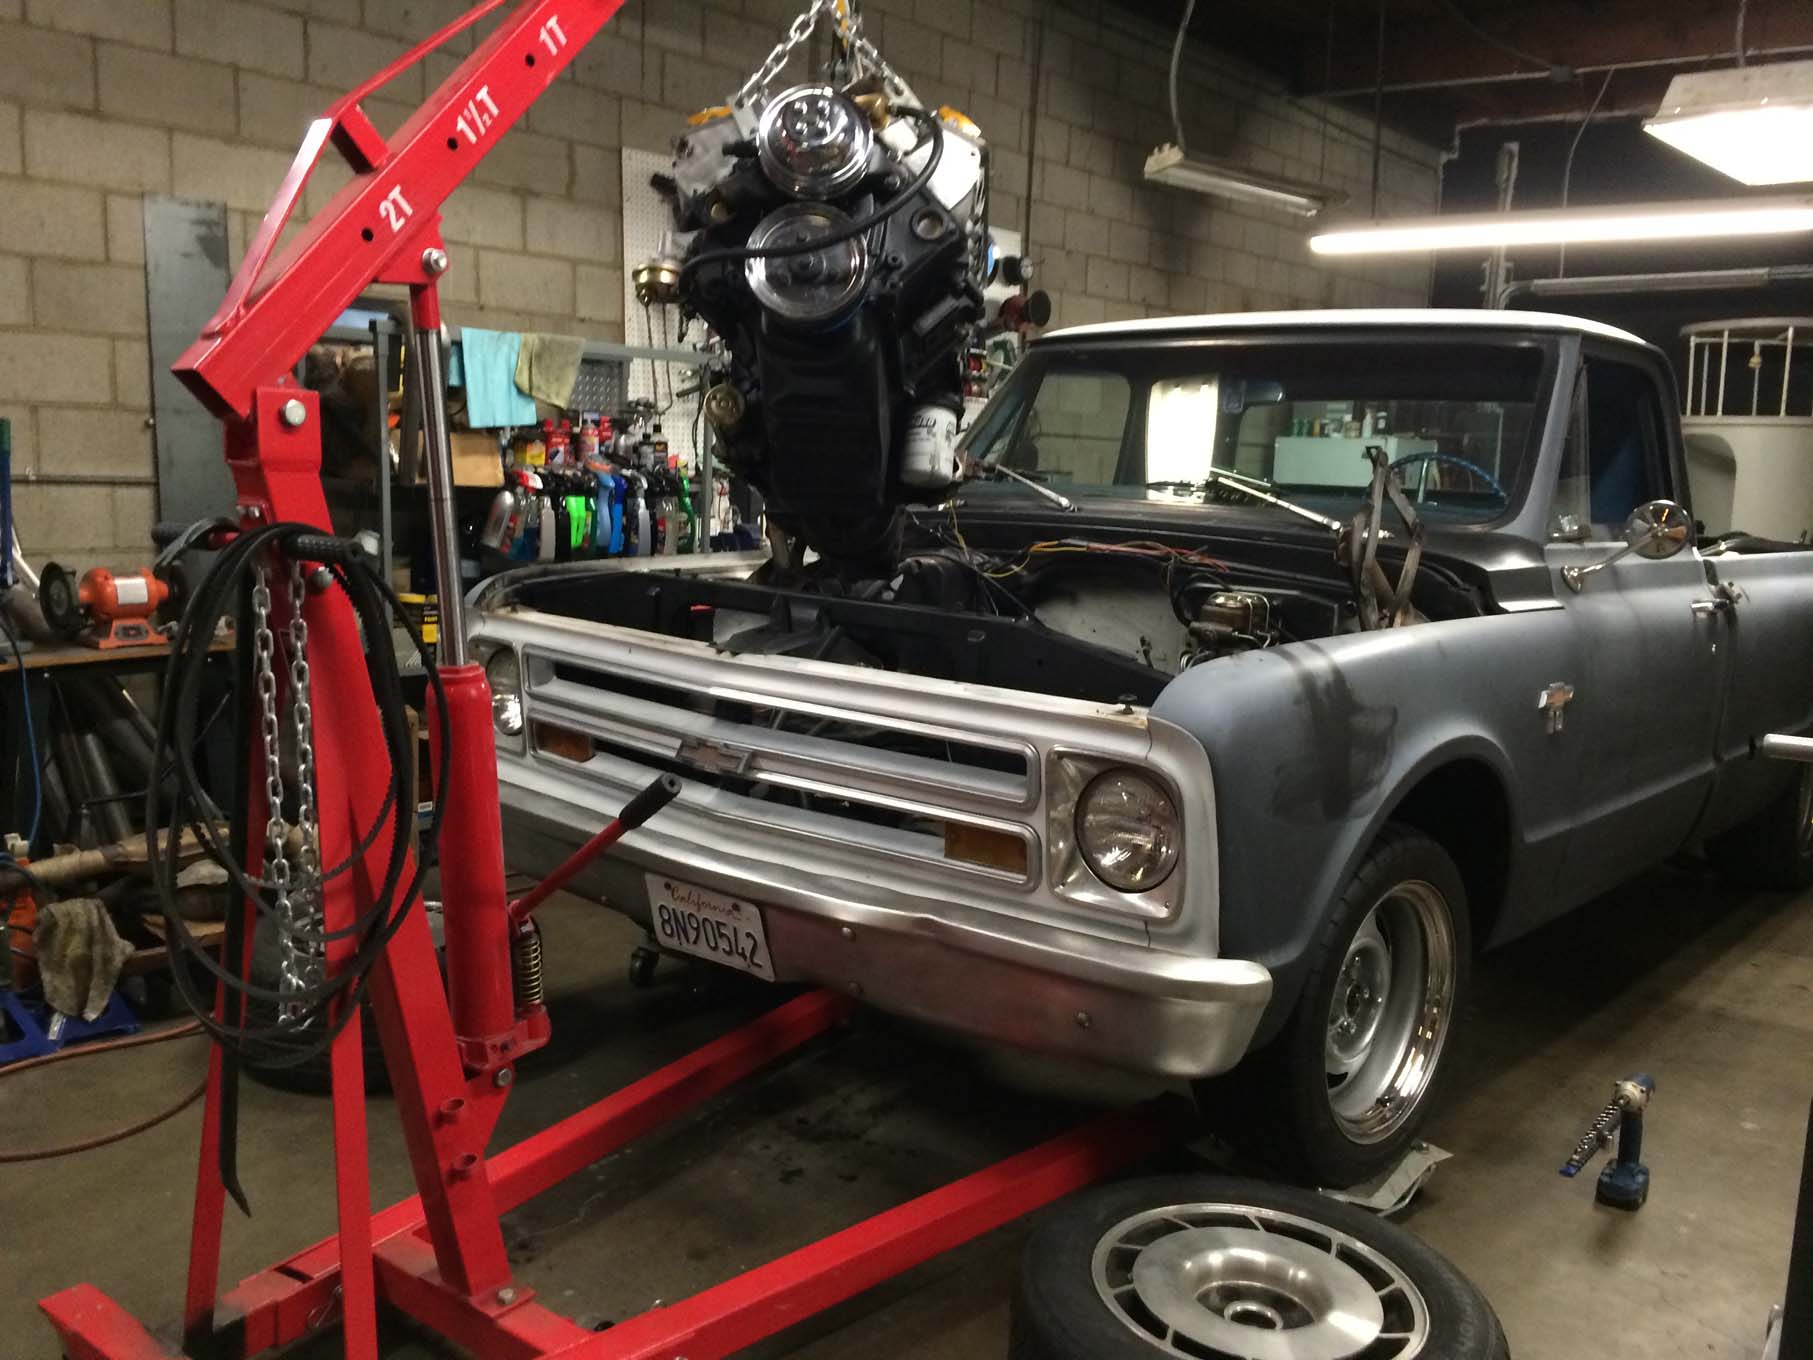 Though we knew it from the start, the only way to fix the oil-consumption problem was to remove and disassemble the engine, so we rolled Truck back into the warehome and got to work.